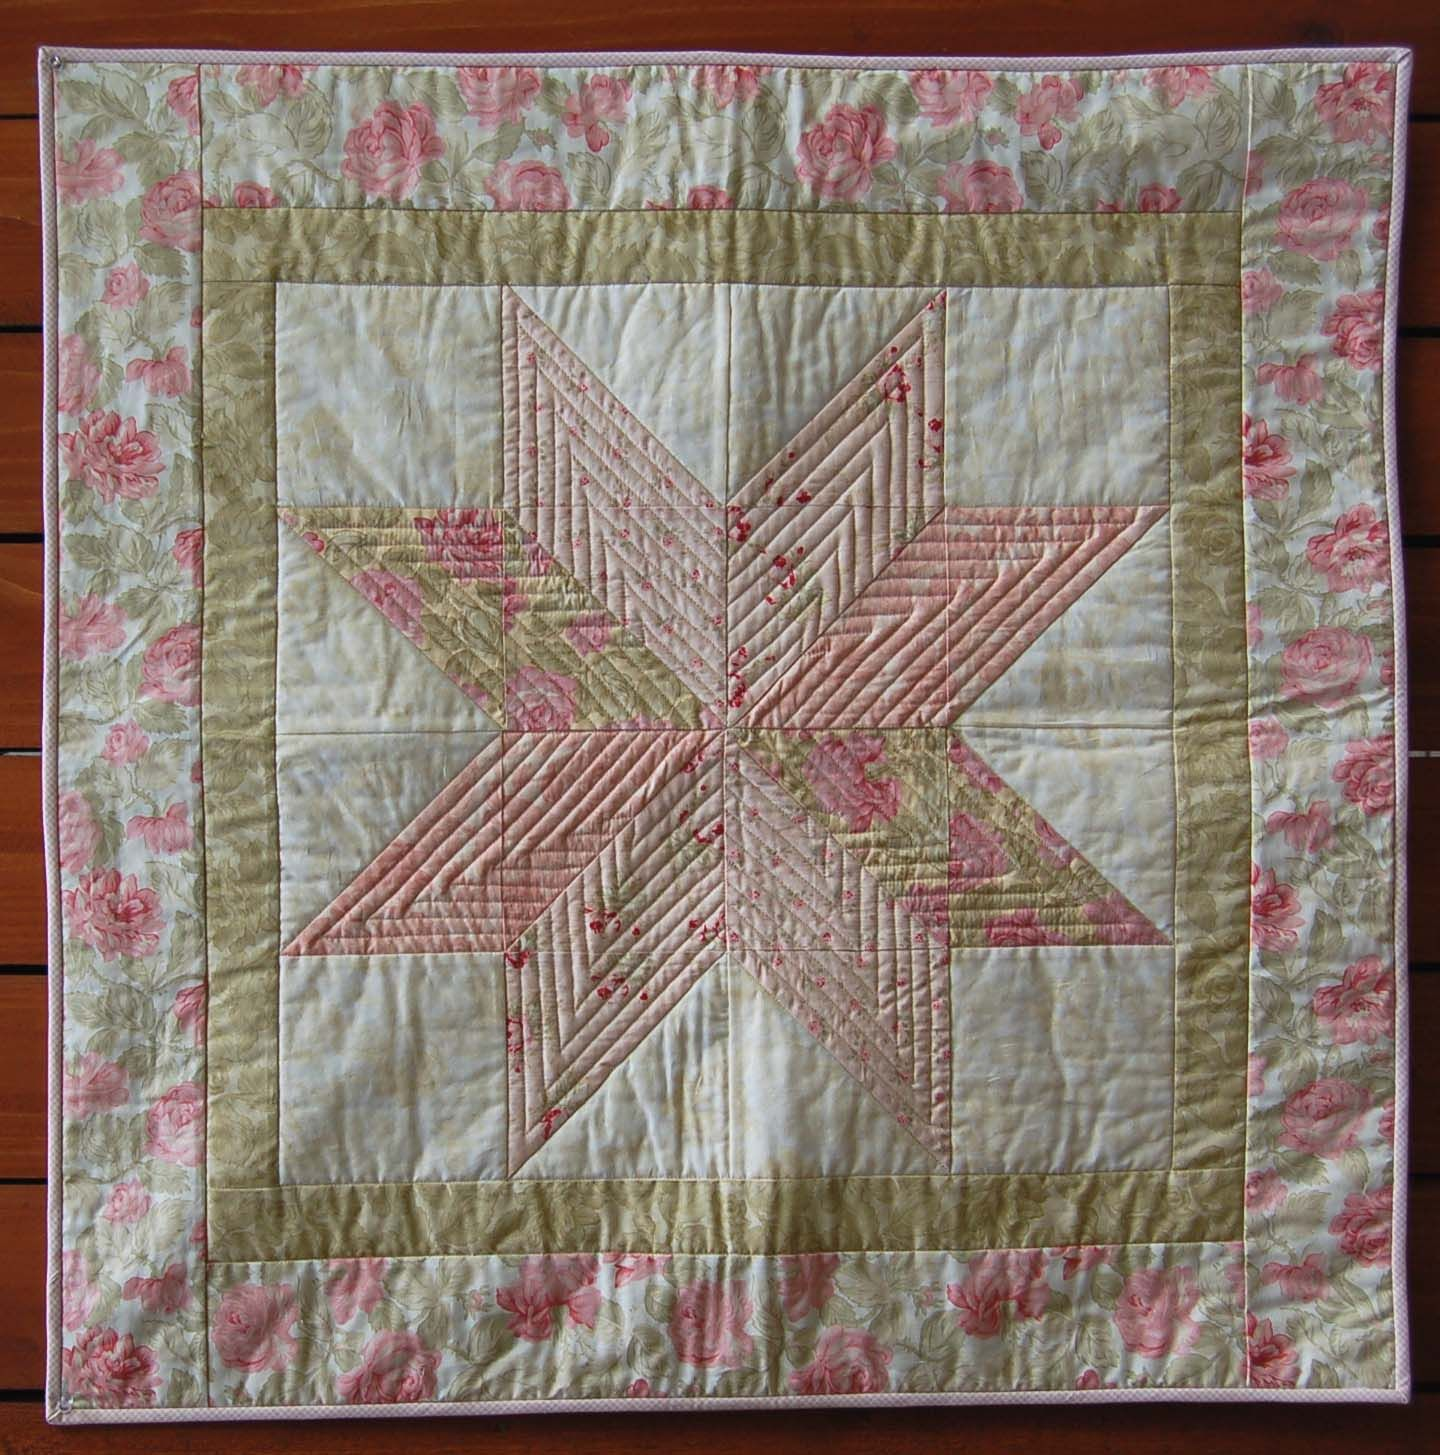 Pin by Christi Michael on Quilting and fabric art | Pinterest ... : easy baby quilt patterns free - Adamdwight.com